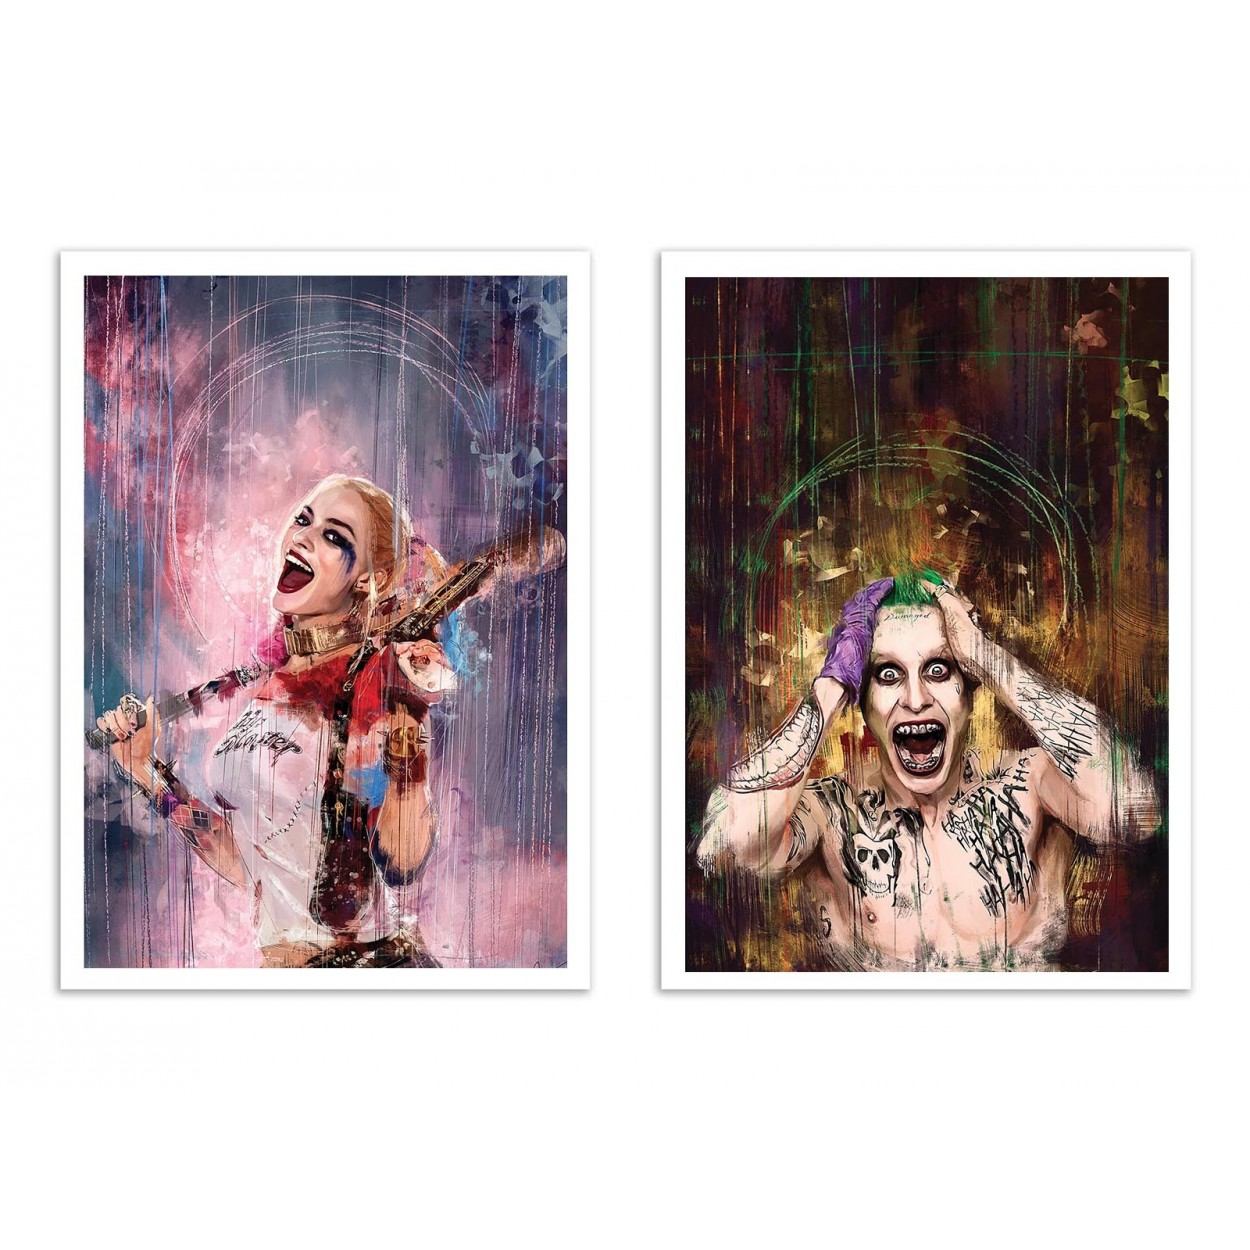 2 Art Posters 30 X 40 Cm By Duo Harley Quinn And Joker By Wisesnail